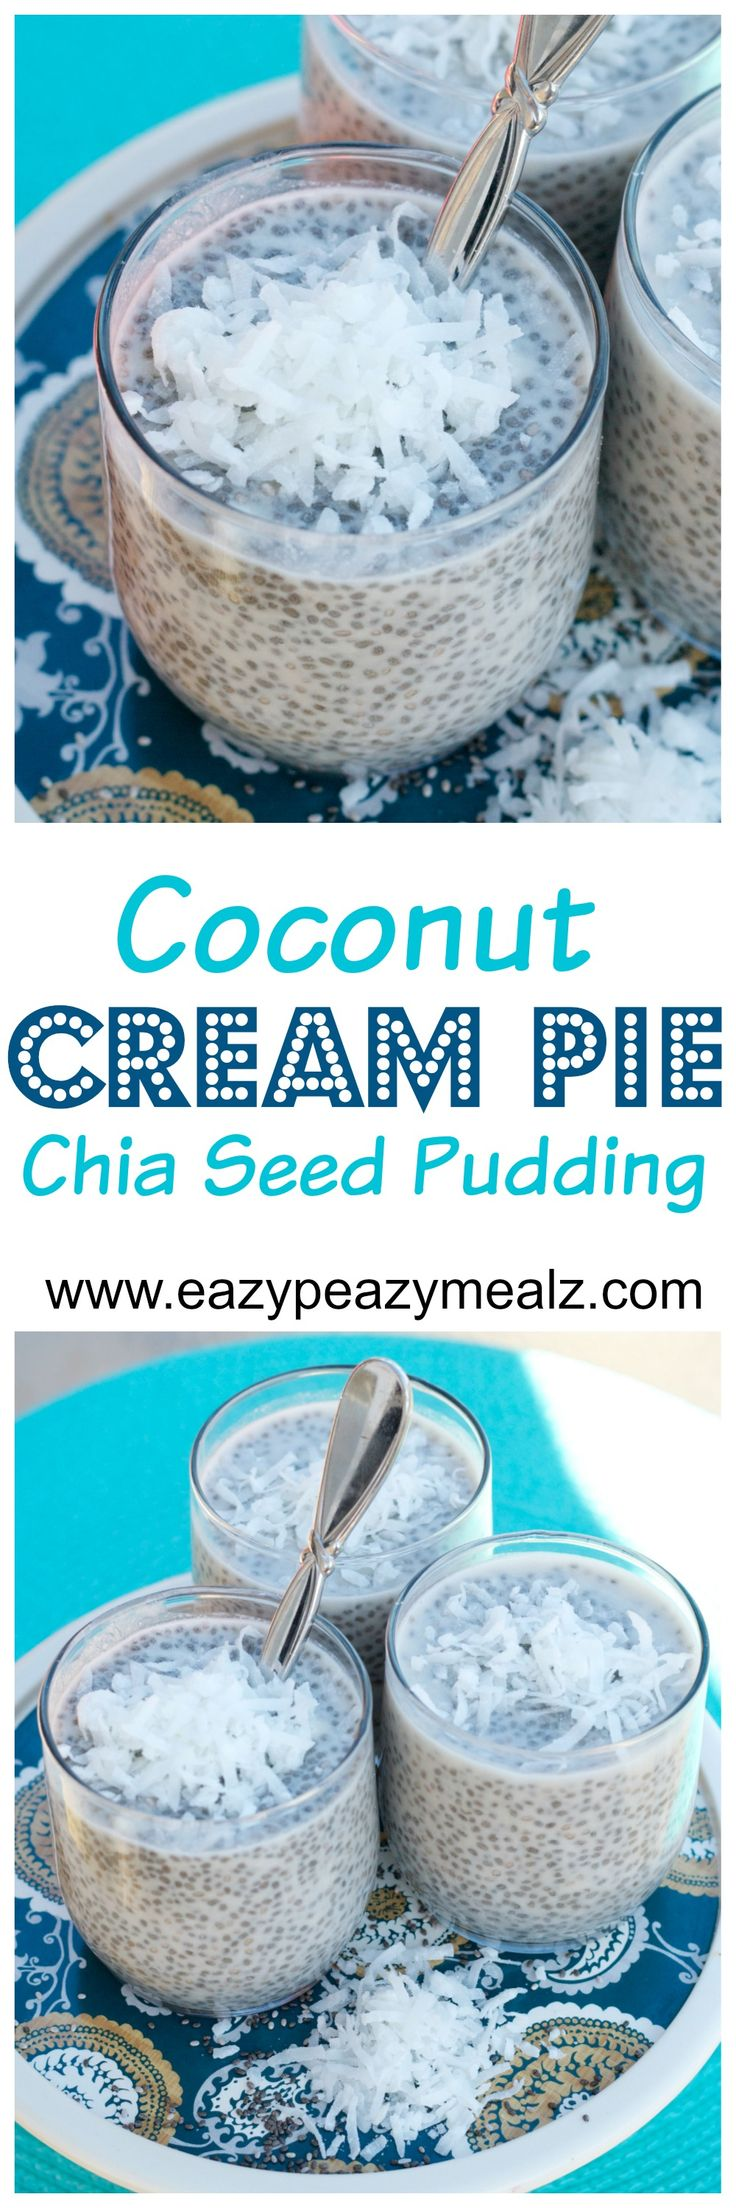 Is it dessert? Is it breakfast? Who cares! It is healthy, easy to make, and tastes amazing! This is my favorite go to healthy breakfast! - Eazy Peazy Mealz